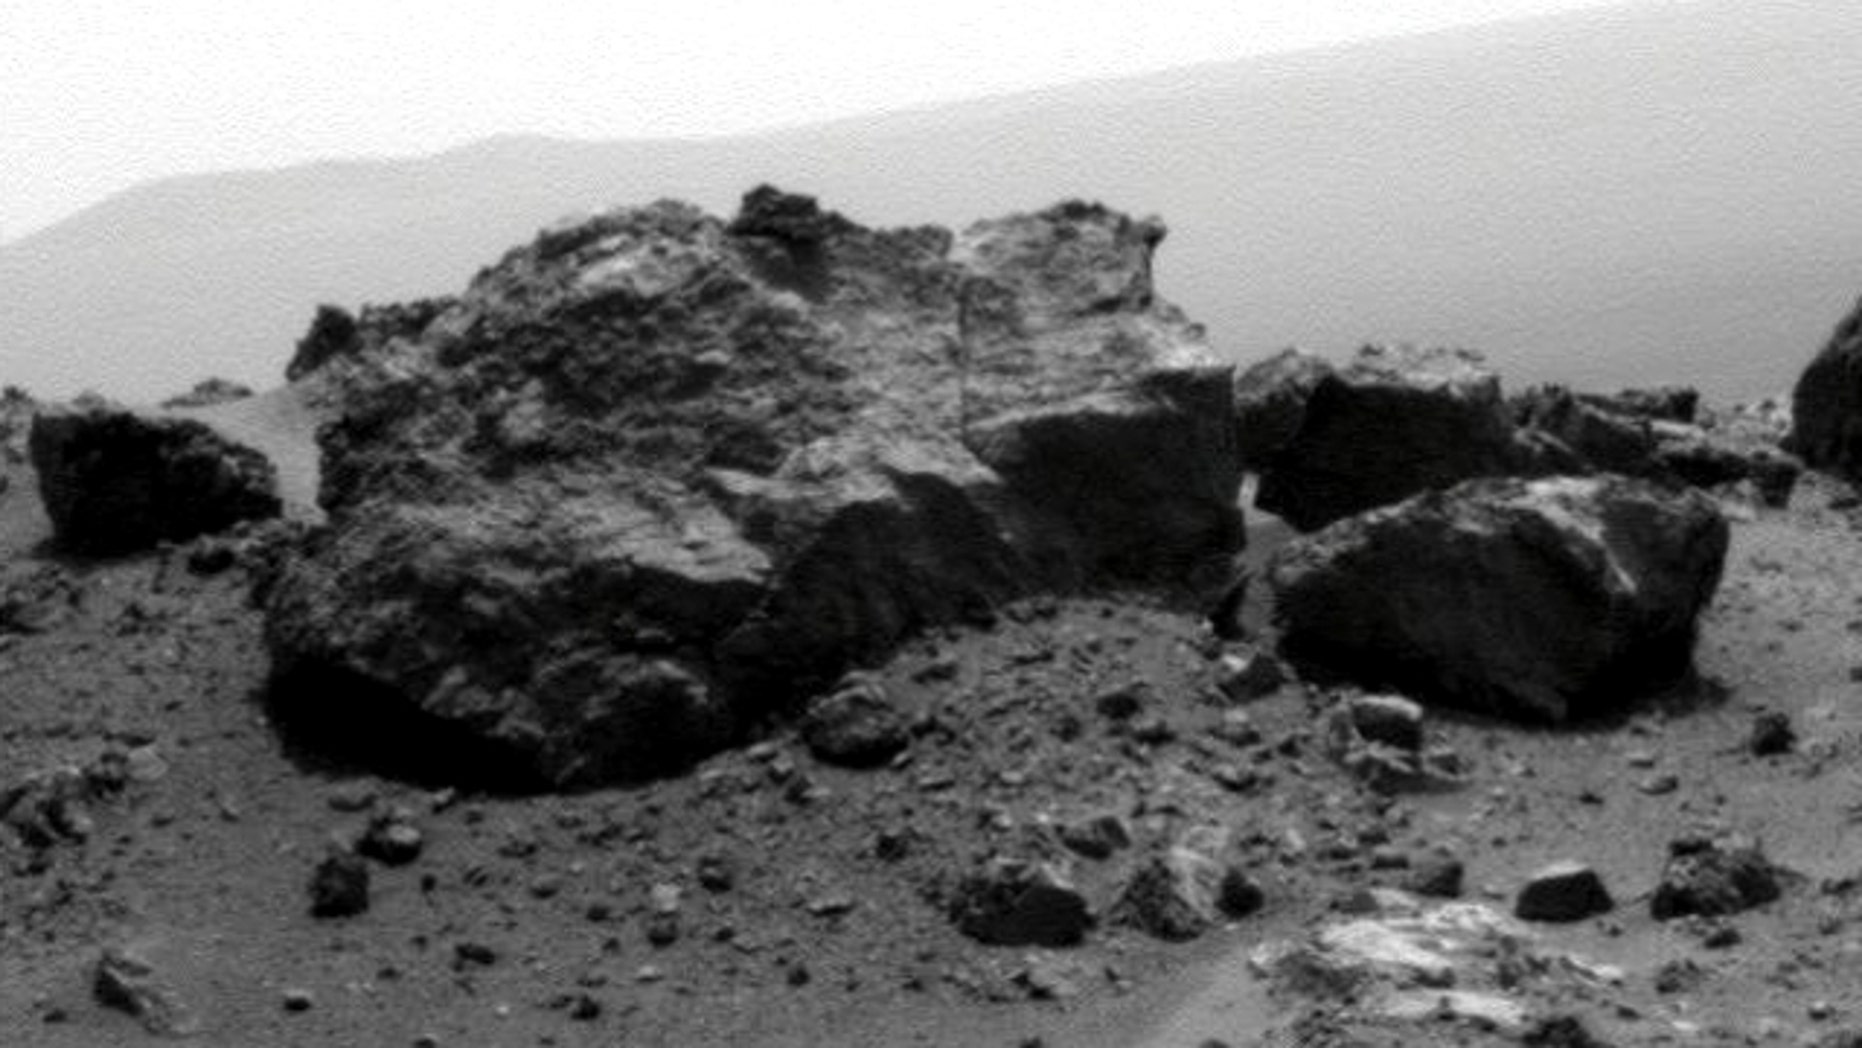 Aug. 13, 2011: NASA's Mars Exploration Rover Opportunity looked across a small crater on the rim of a much larger crater to capture this raw image from its panoramic camera during the rover's 2,685th Martian day, or sol, of work on Mars.